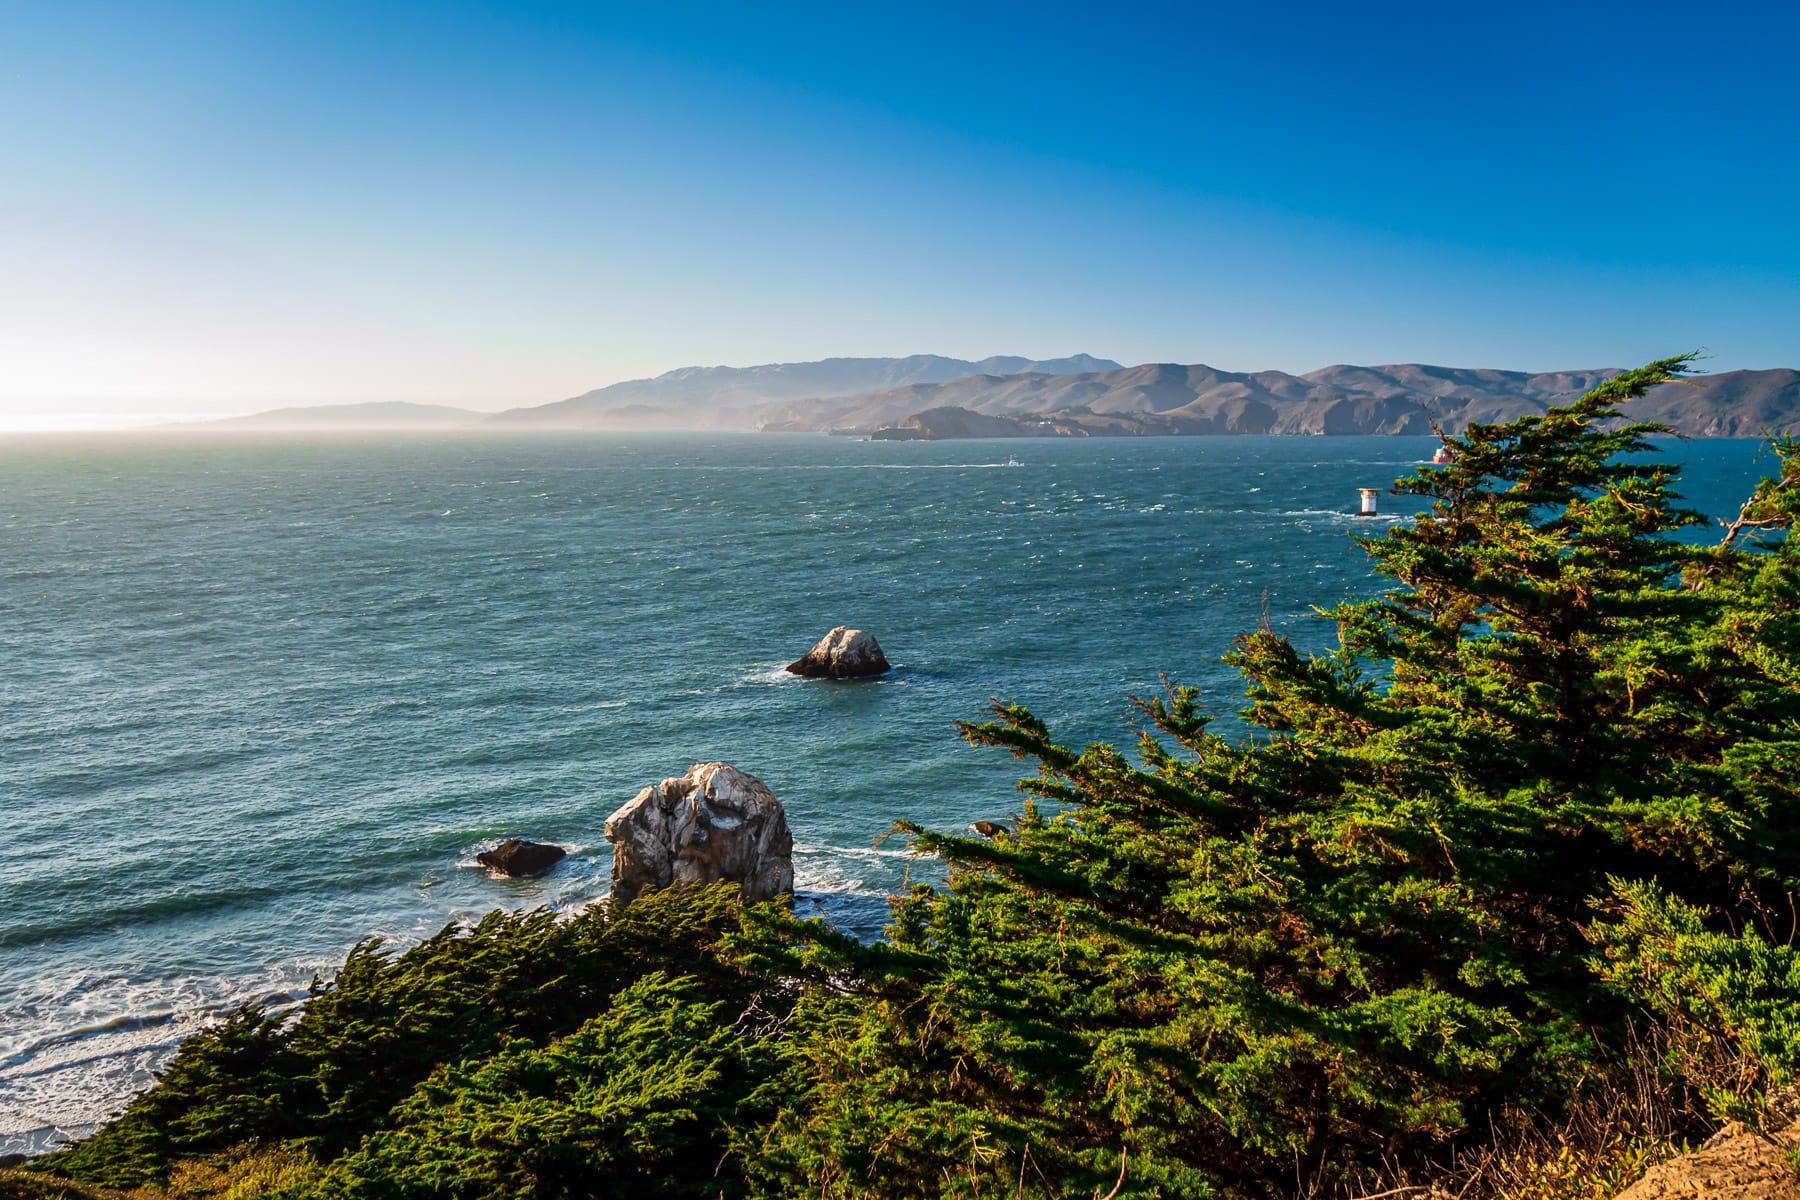 The Pacific Ocean narrows into the Golden Gate at the headlands of the Marin Peninsula and San Francisco Peninsula as seen from Lands End.